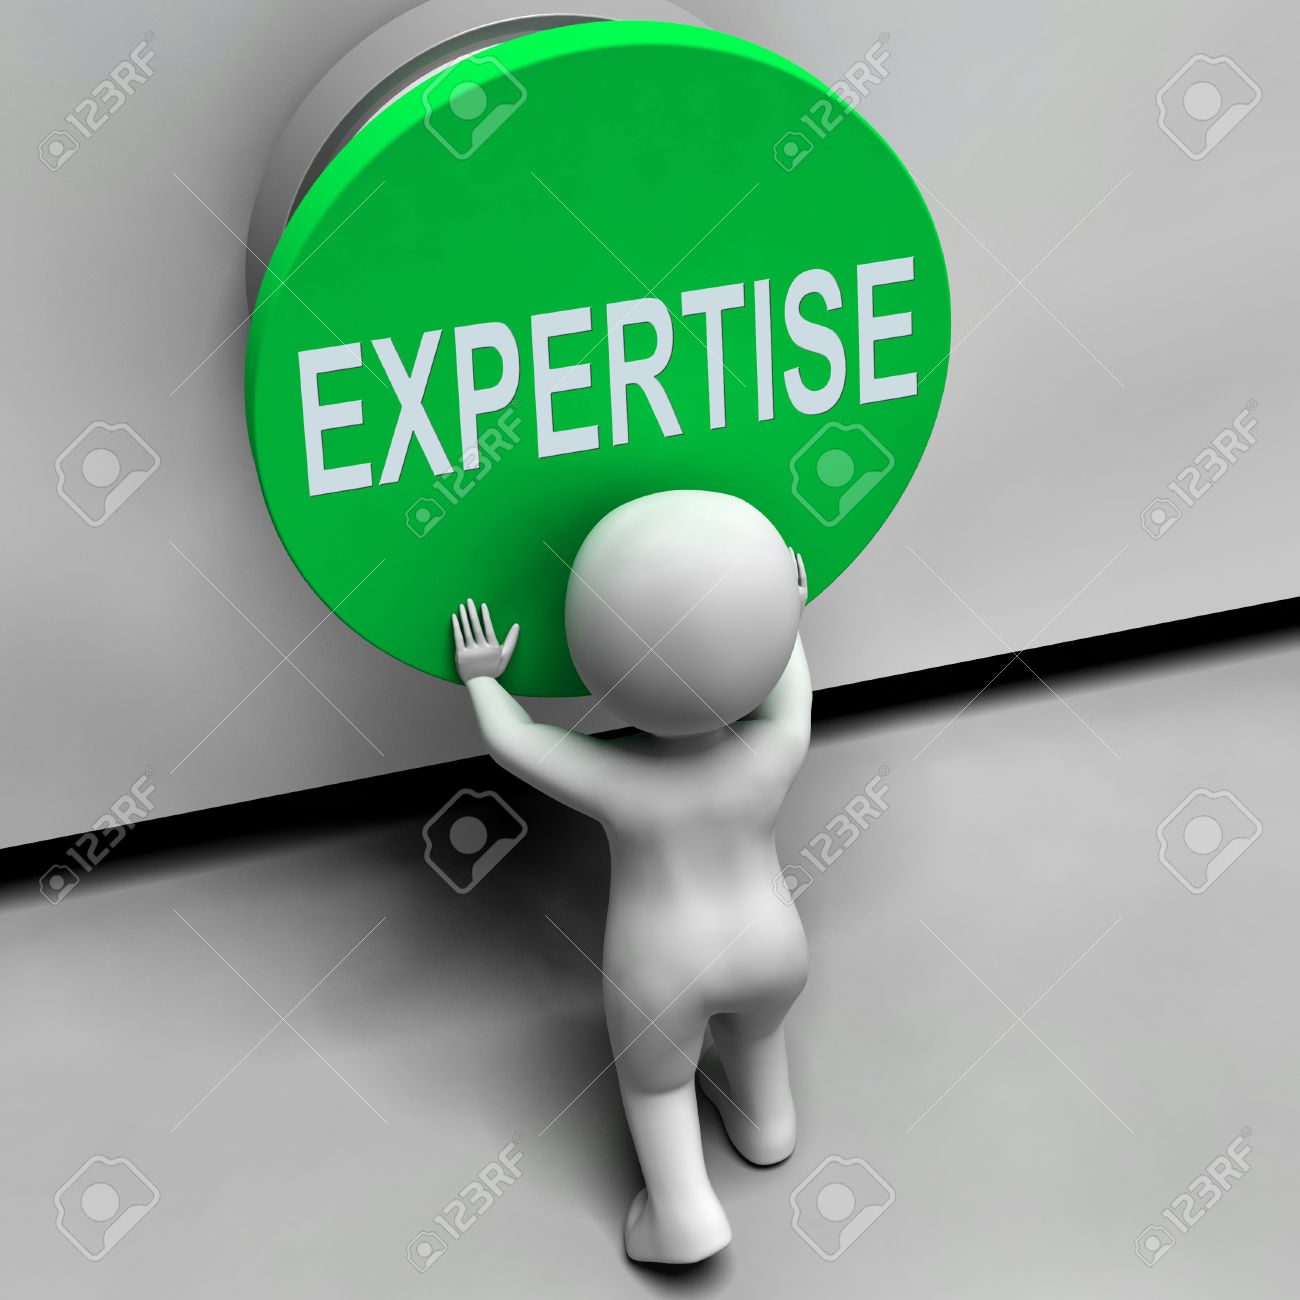 Expertise Button Meaning Skilled Specialist And Proficiency Stock.